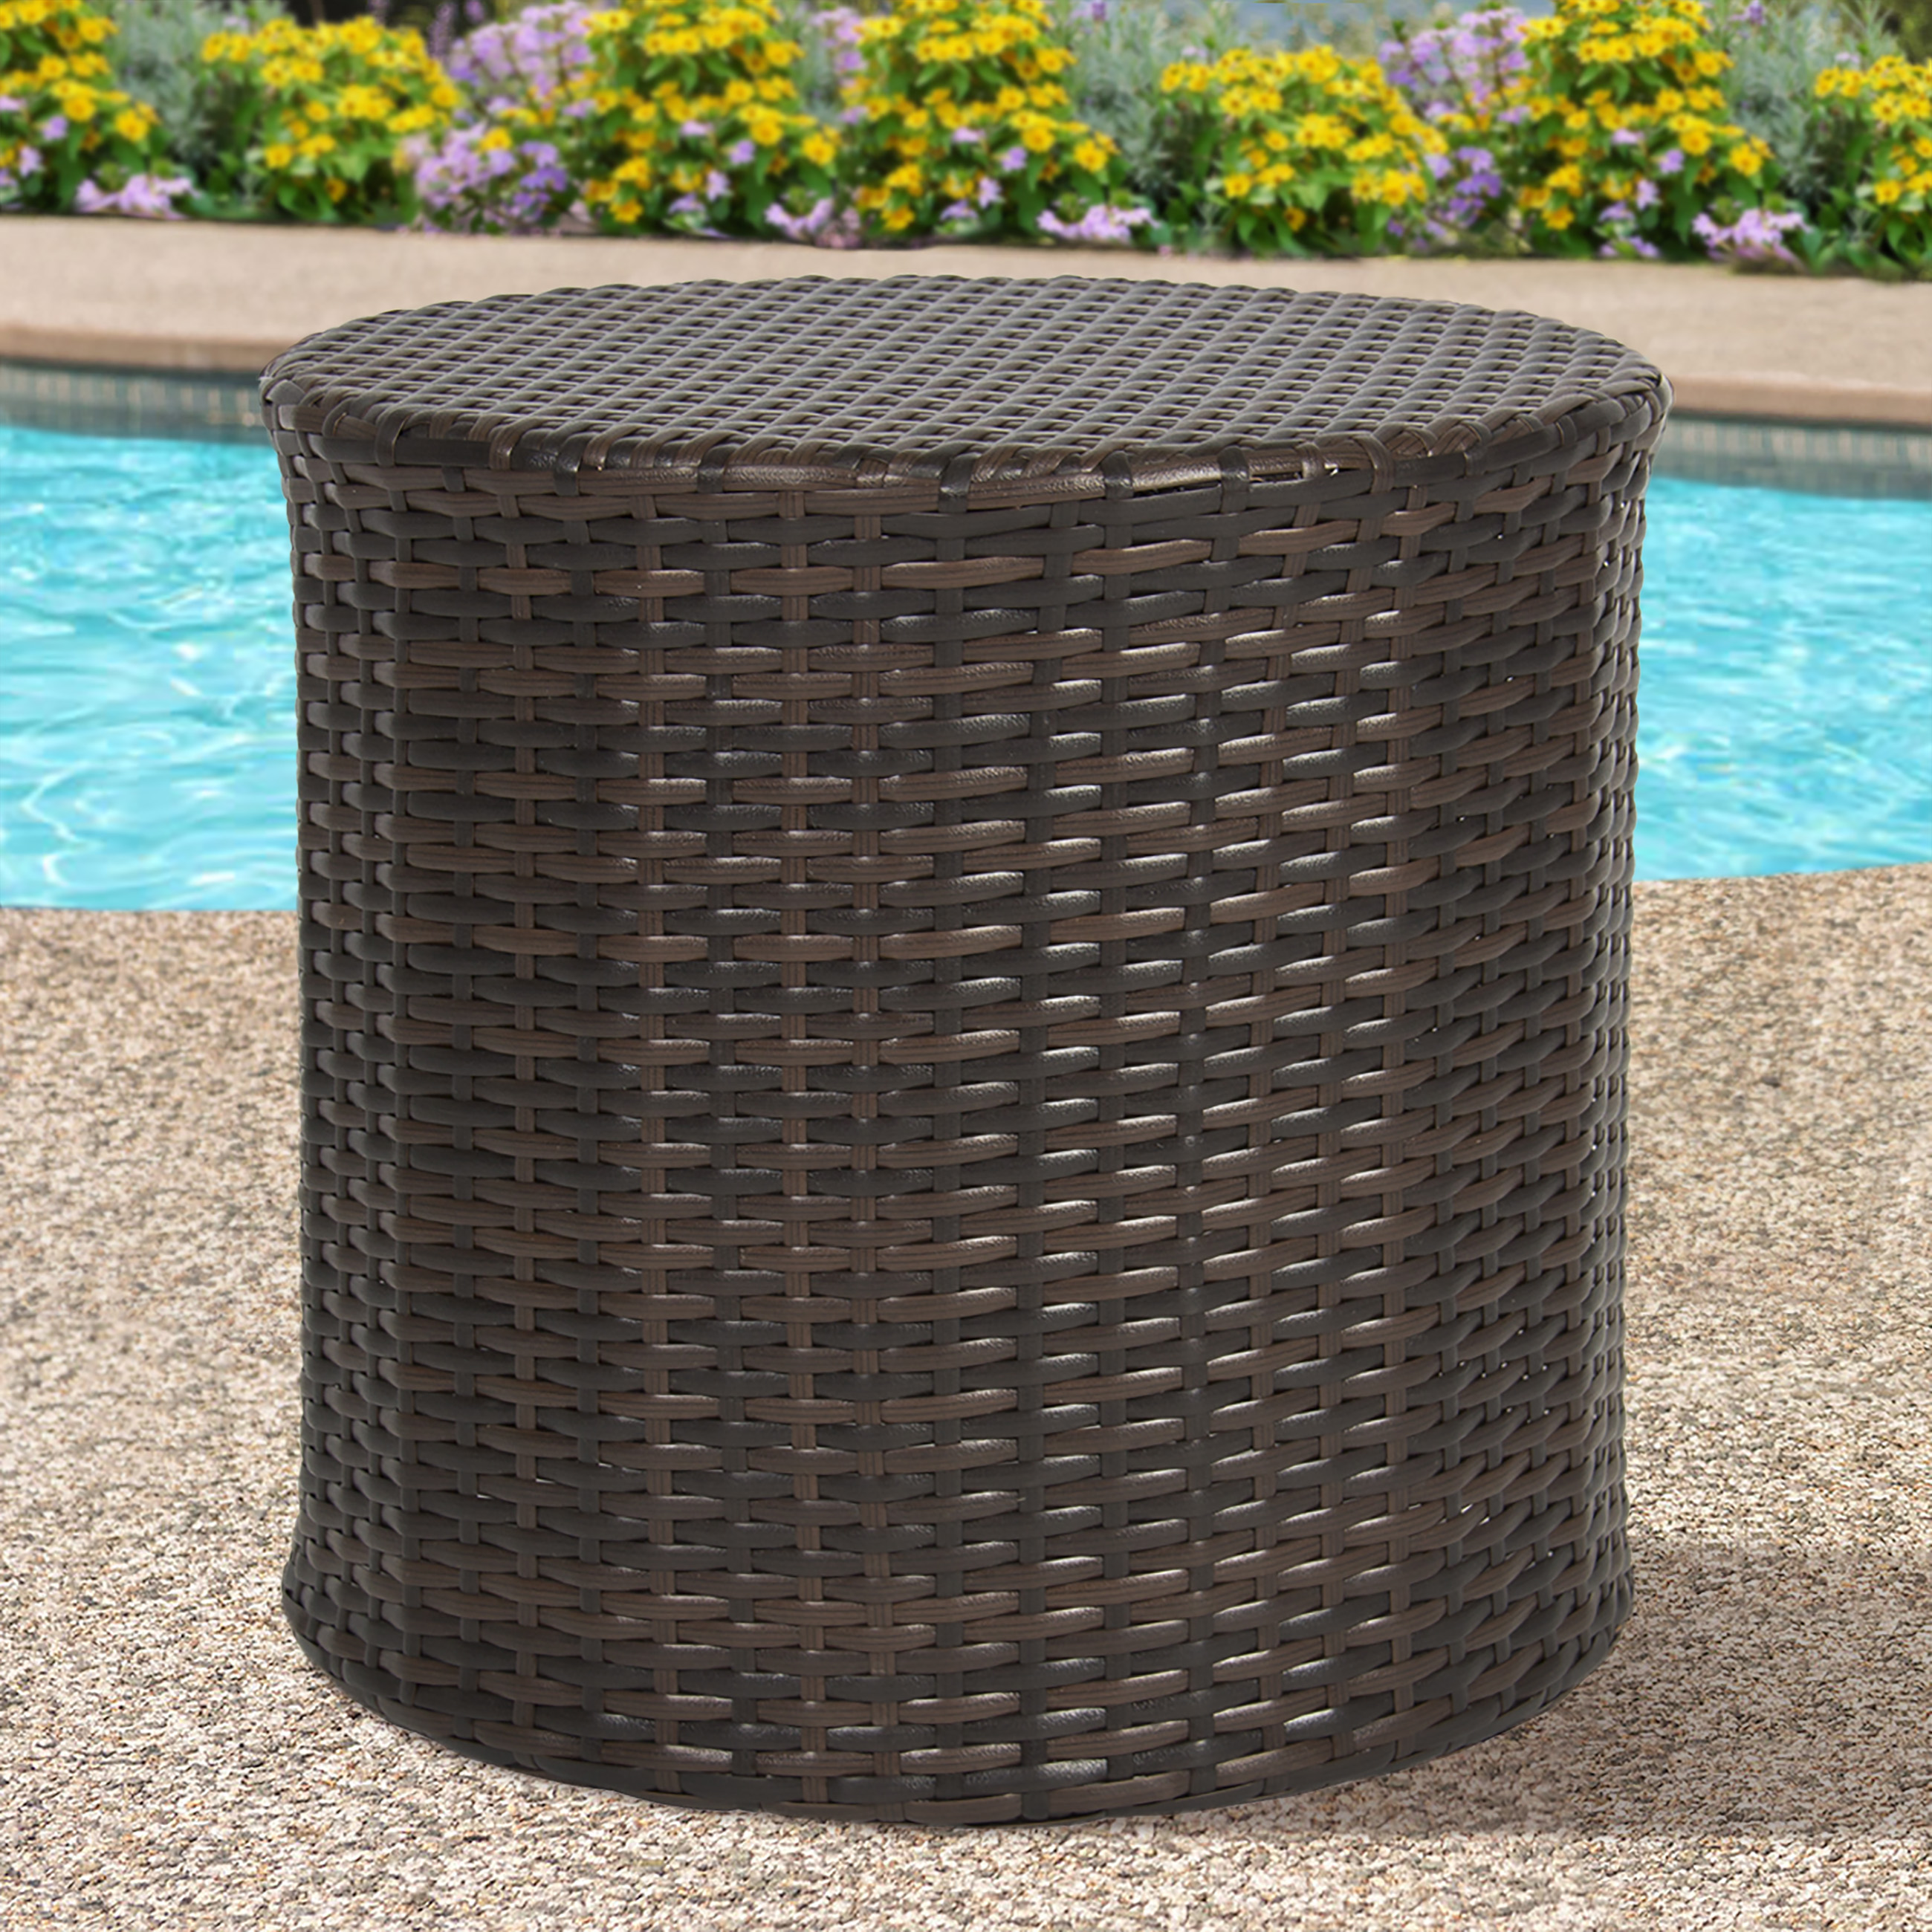 the fantastic beautiful brown wicker outdoor end tables mira side table best choice products rattan barrel patio furniture garden backyard pool laura ashley beds inexpensive